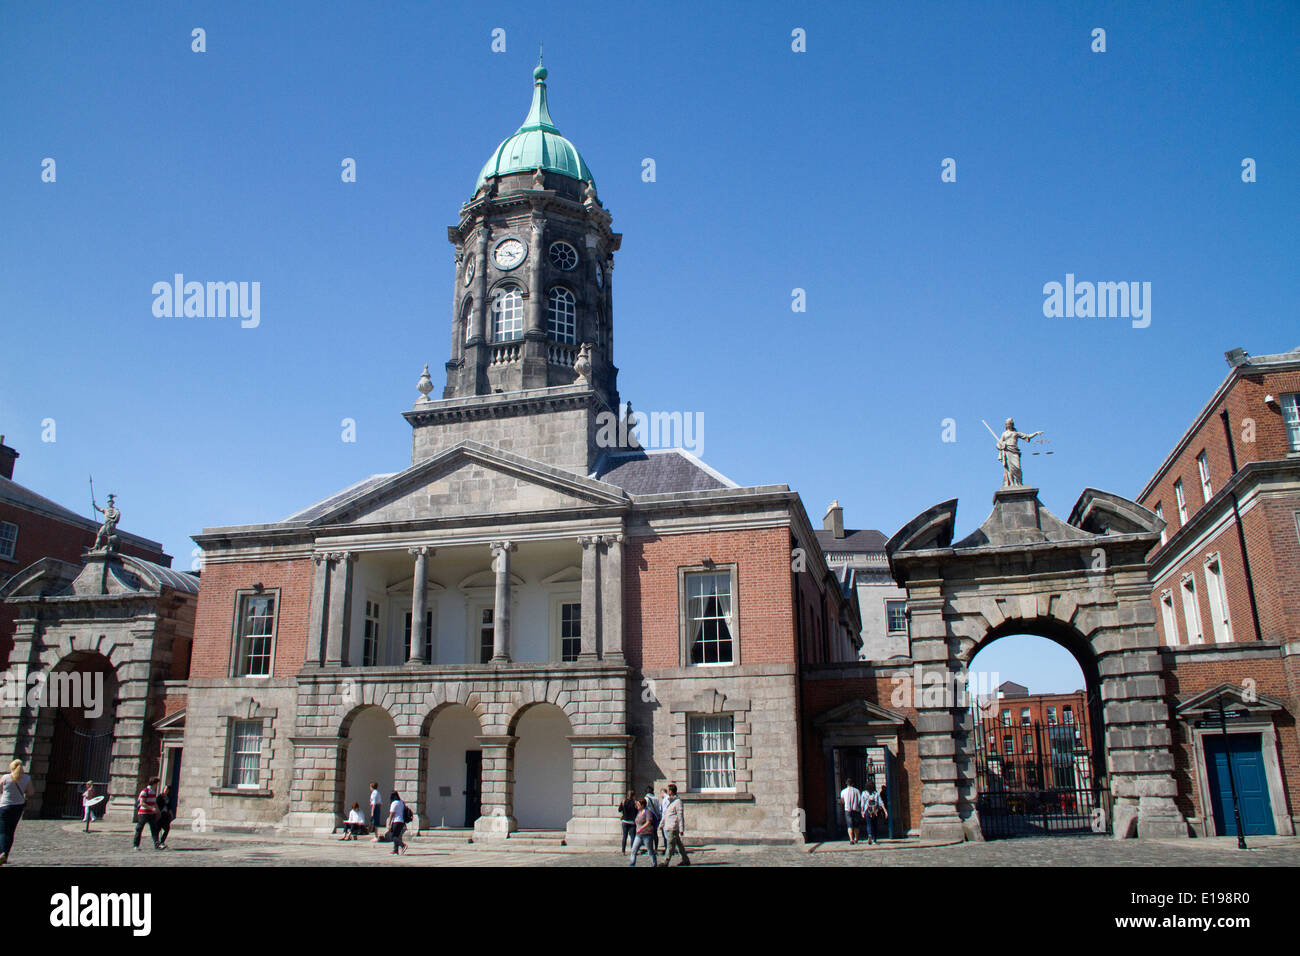 Bedford Tower built 1761 as part of Dublin Castle, seat of English rule in Ireland Dublin,Ireland Stock Photo